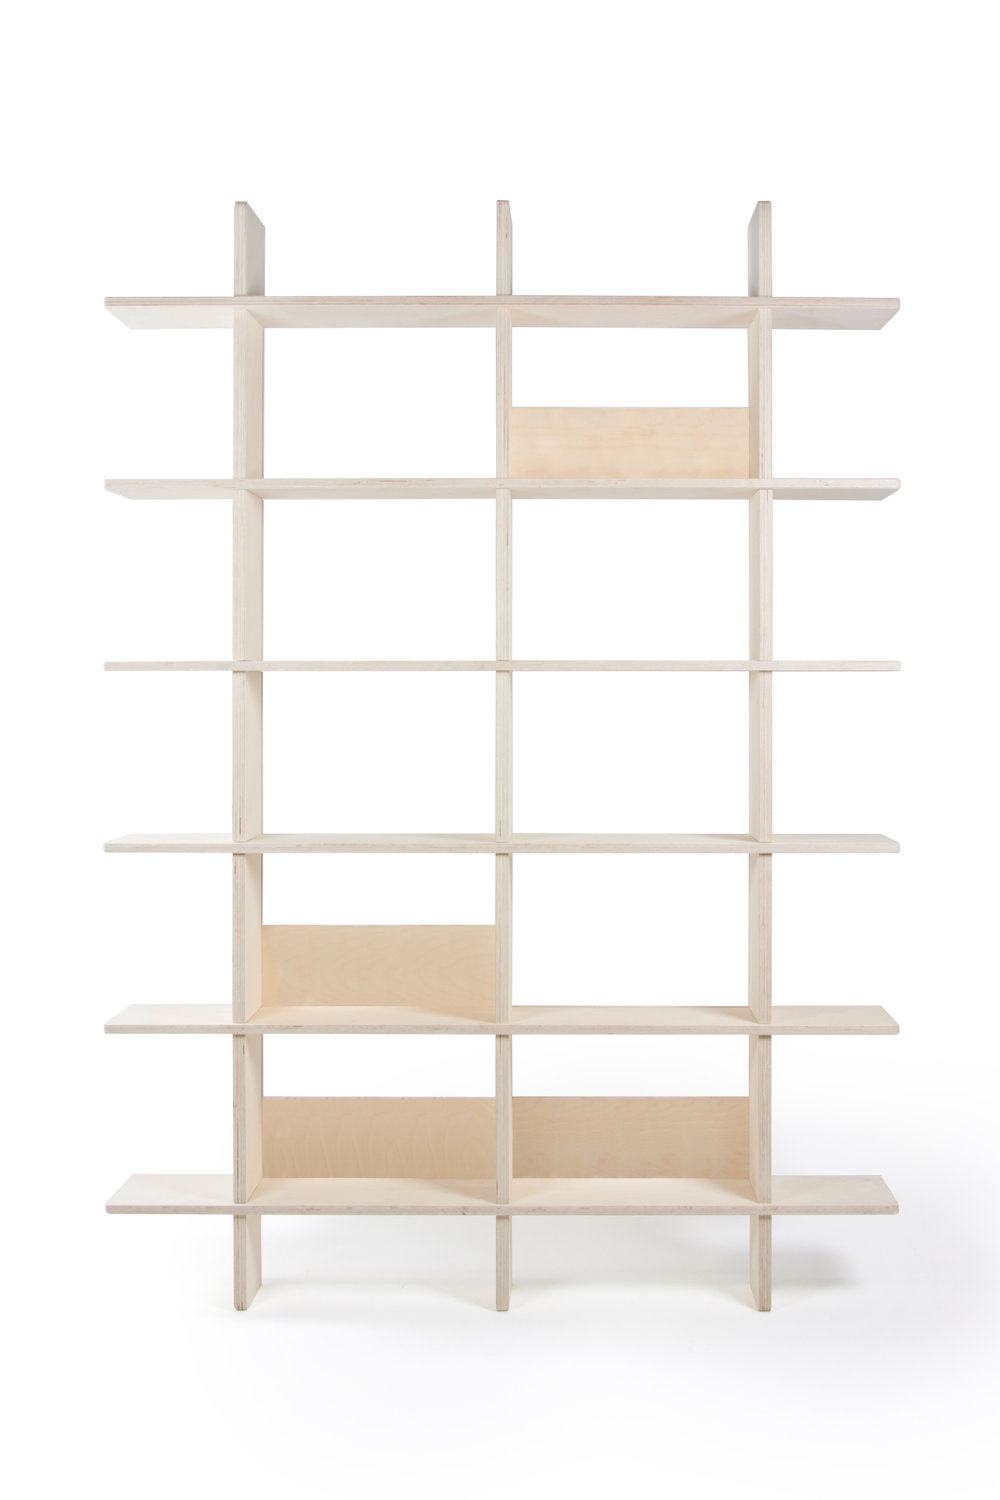 Shelf-Linnea-Modular-56w-6shelf-front.jpg